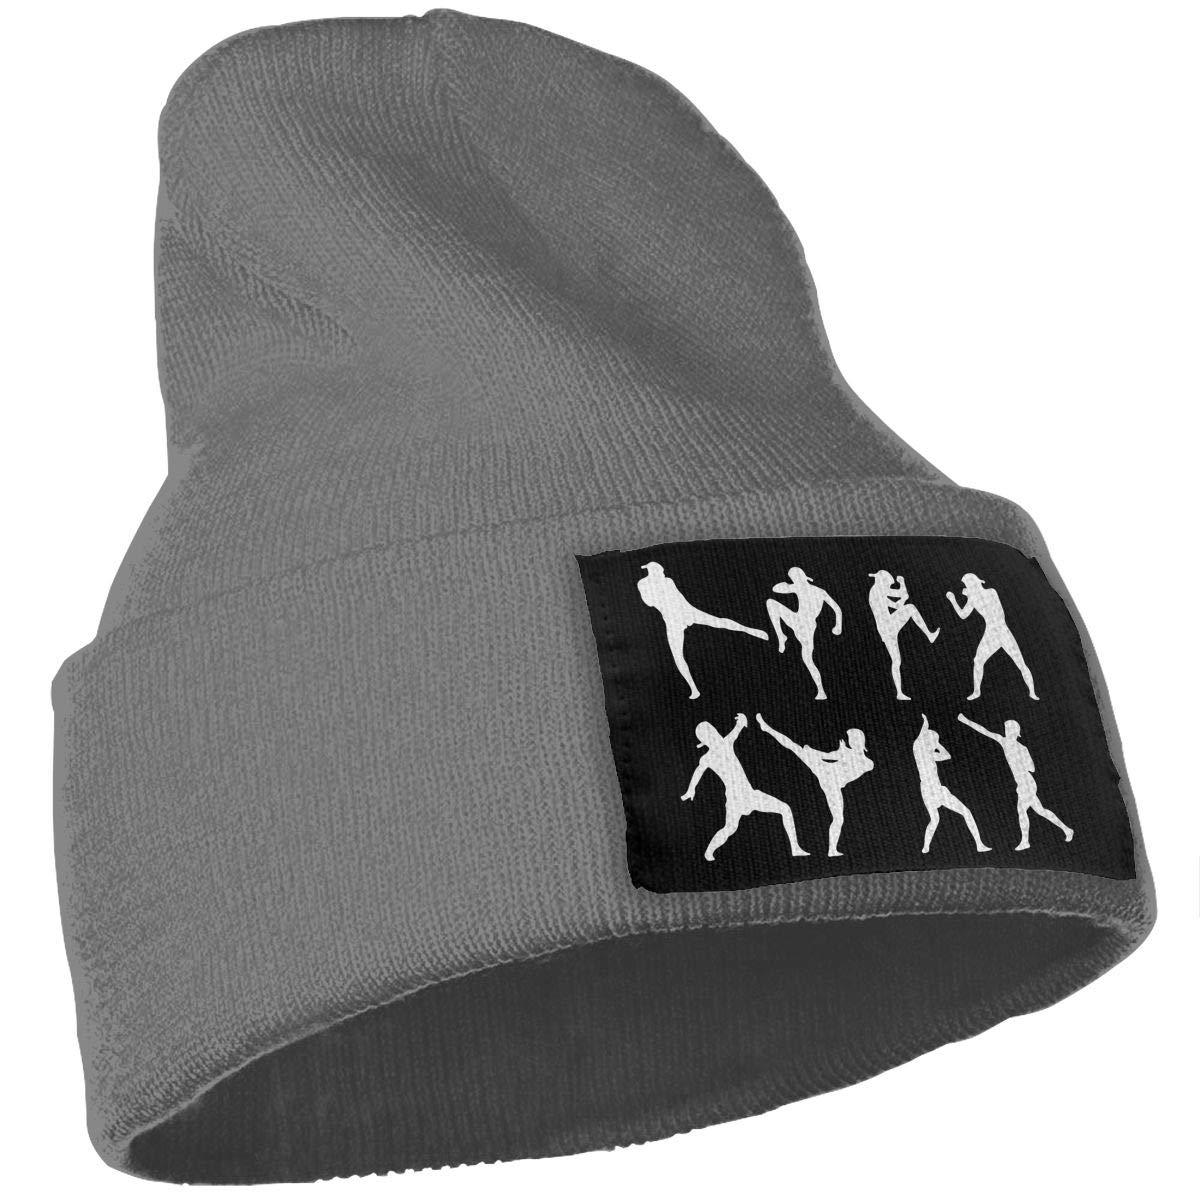 COLLJL-8 Men /& Women Bring It Outdoor Fashion Knit Beanies Hat Soft Winter Knit Caps